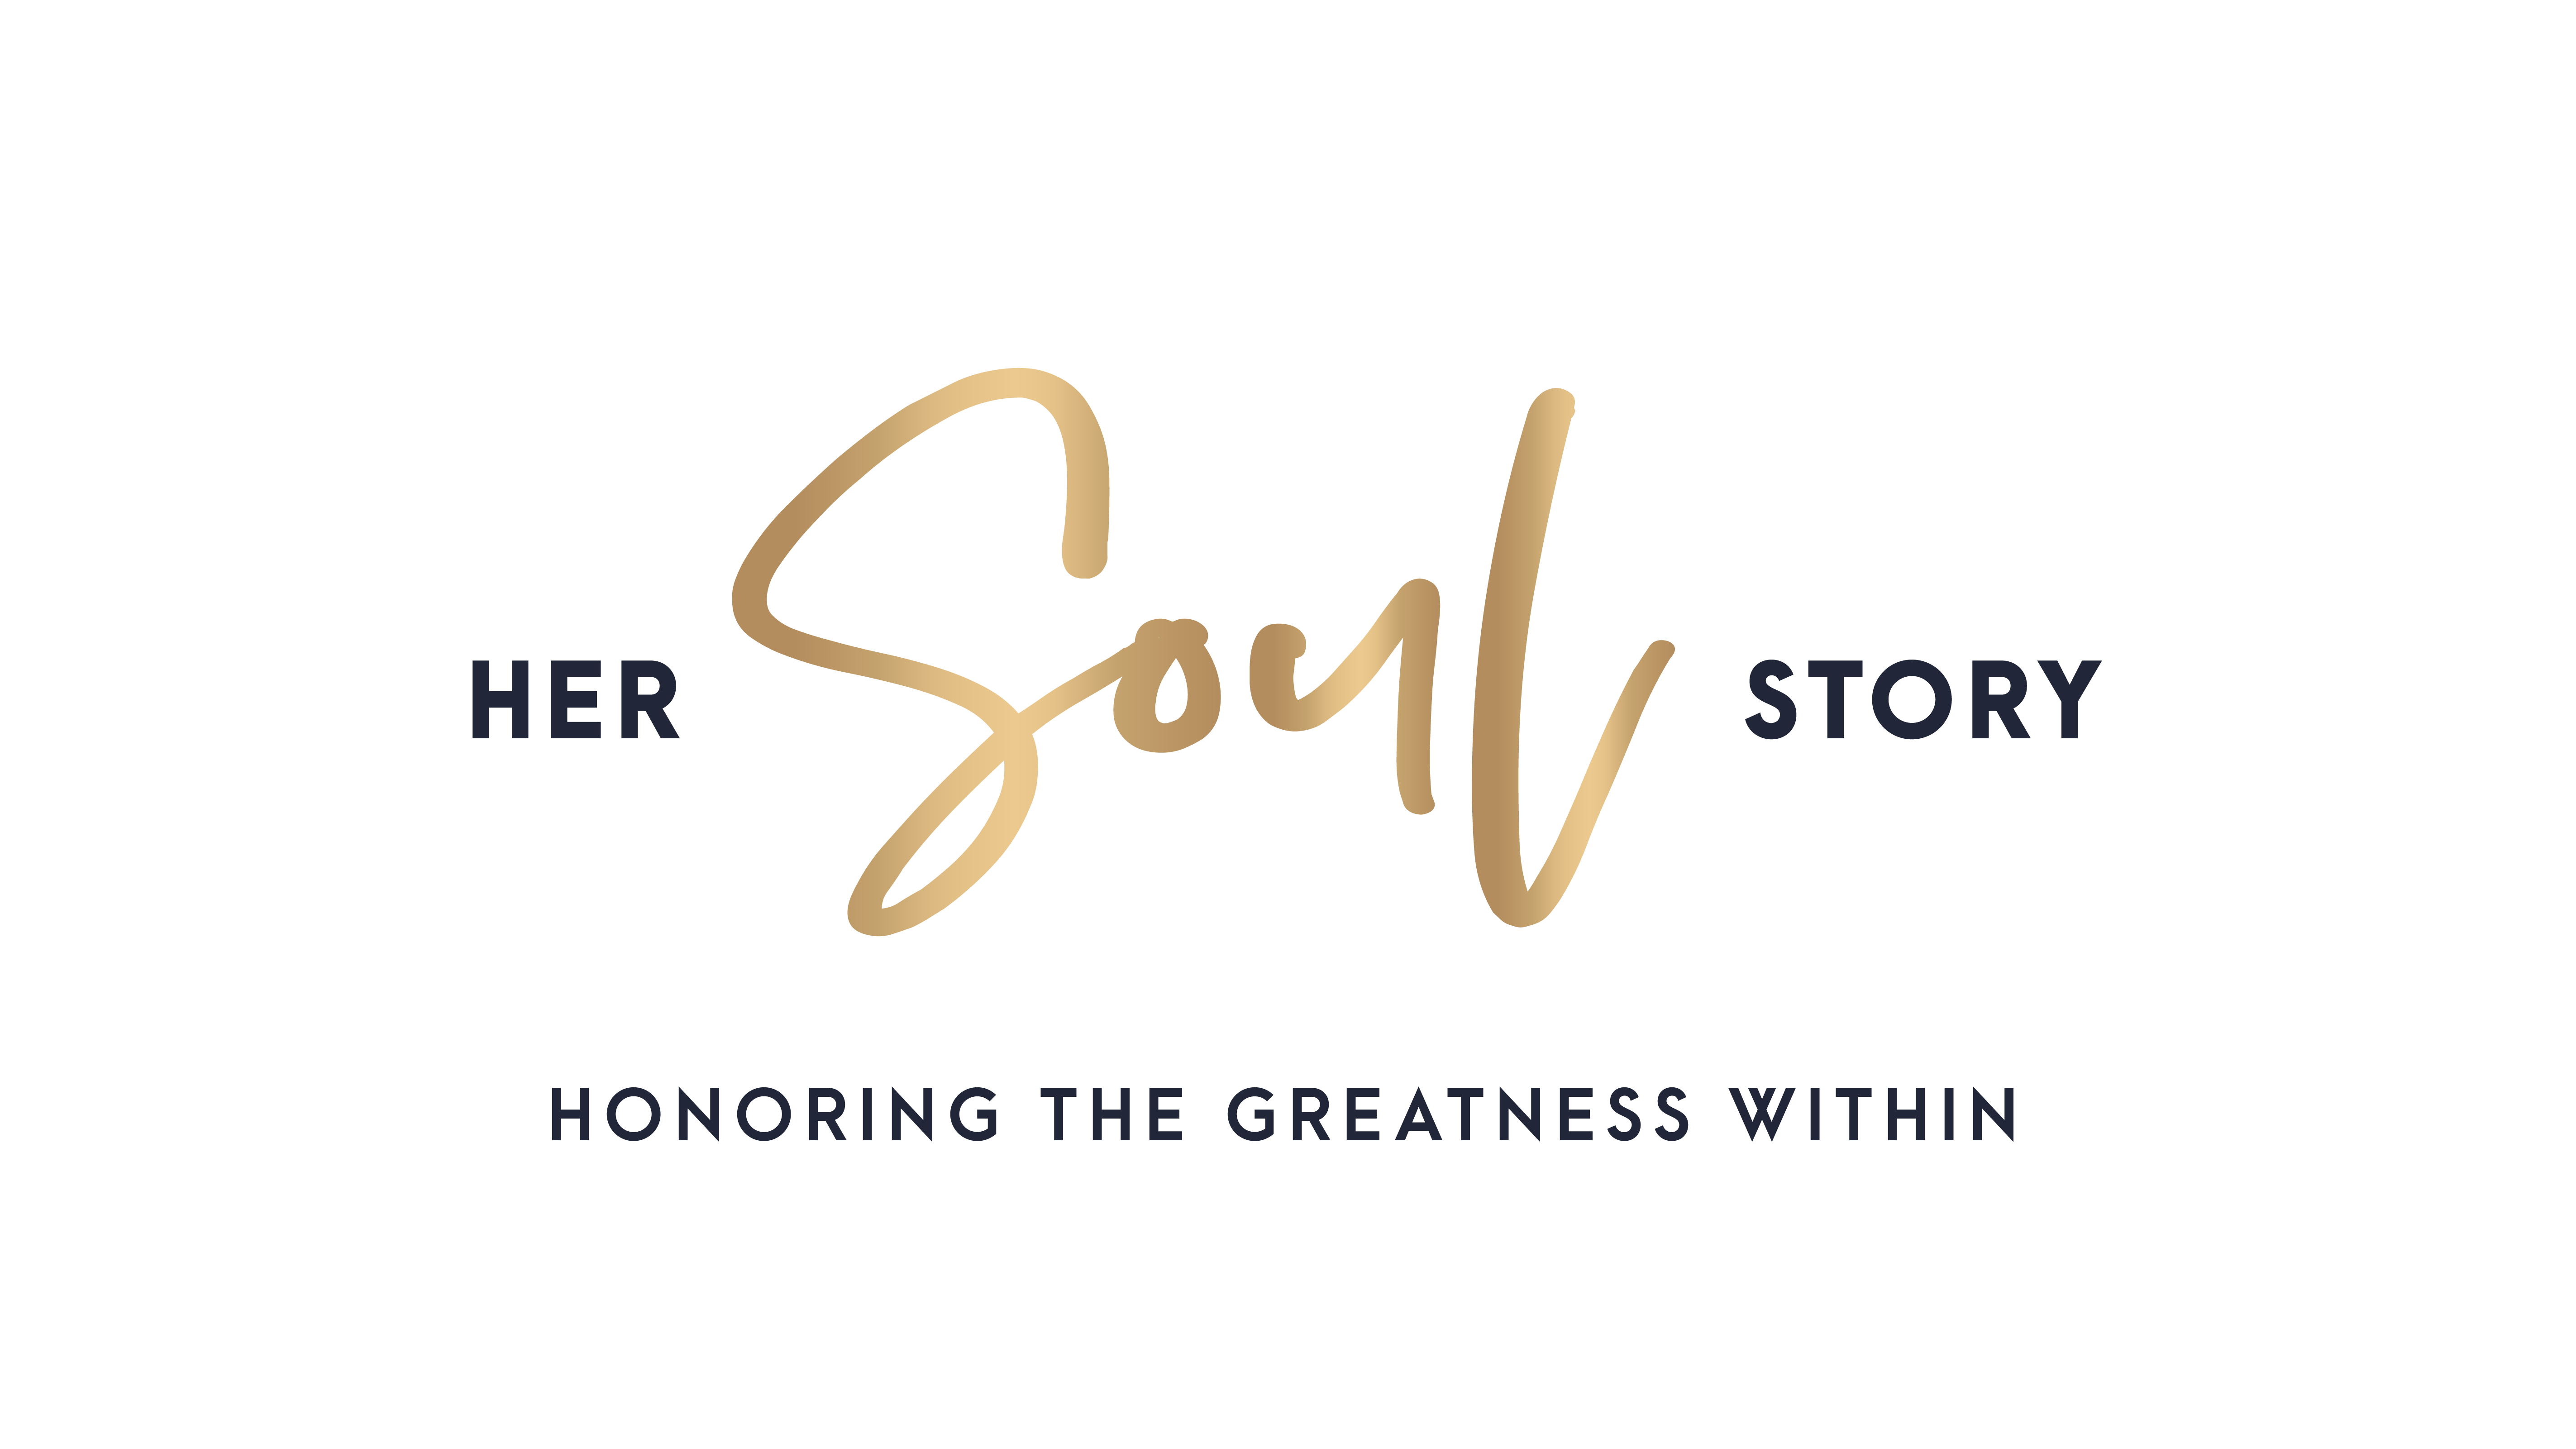 Her Soul Story Presents: Letting Go of Limiting Beliefs